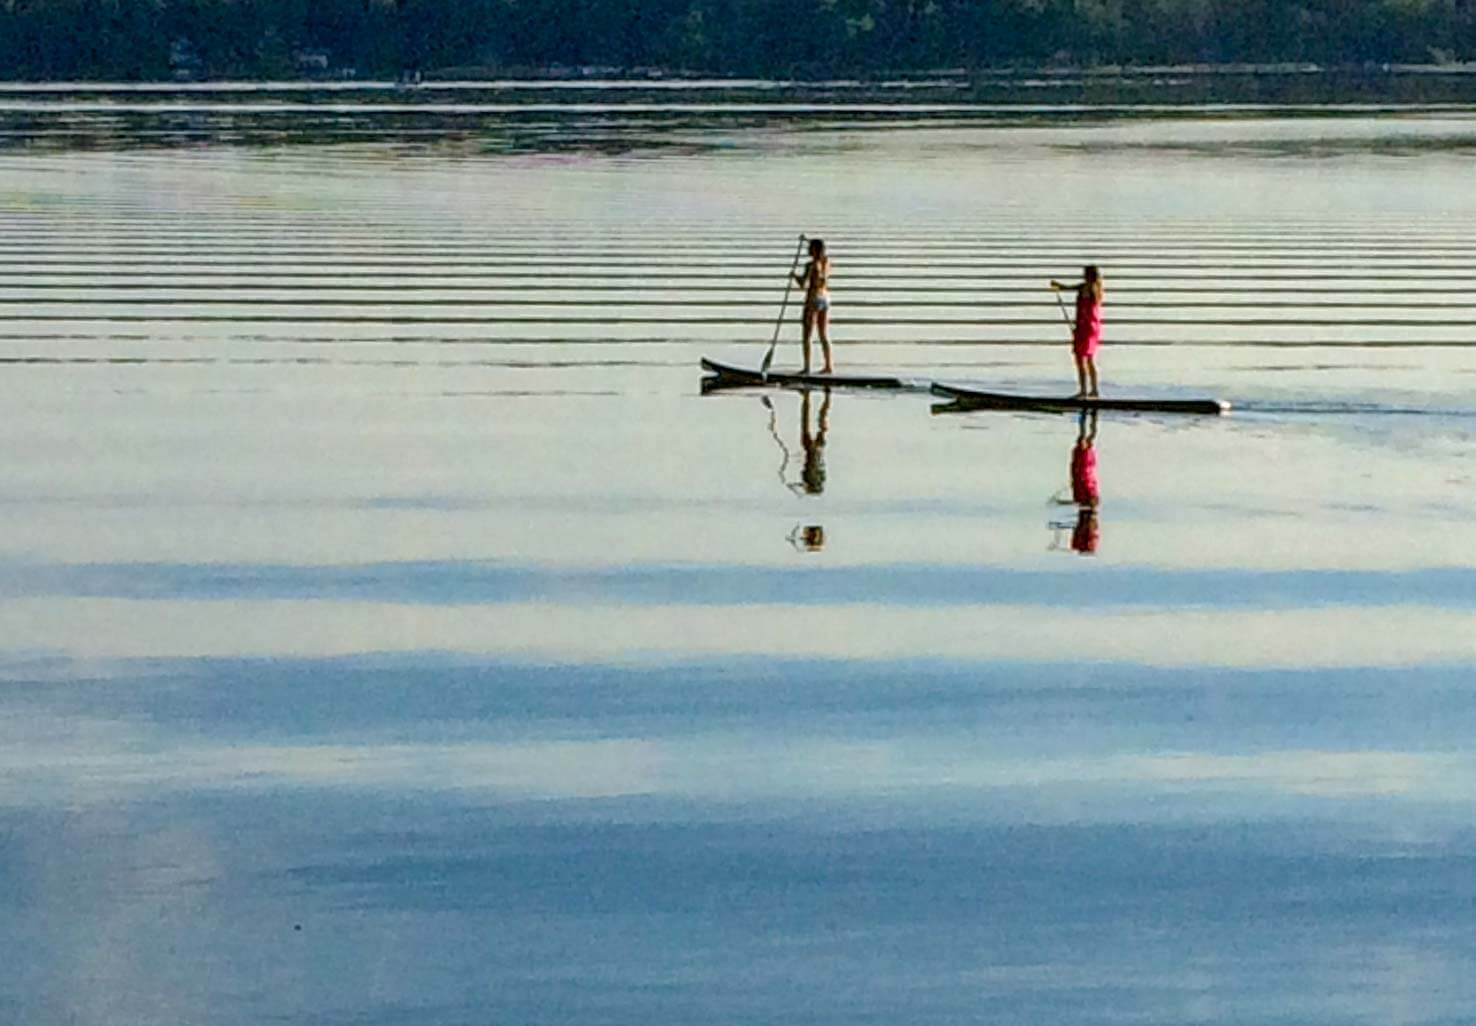 Stand Up Paddle Boarding On Tripp Lake